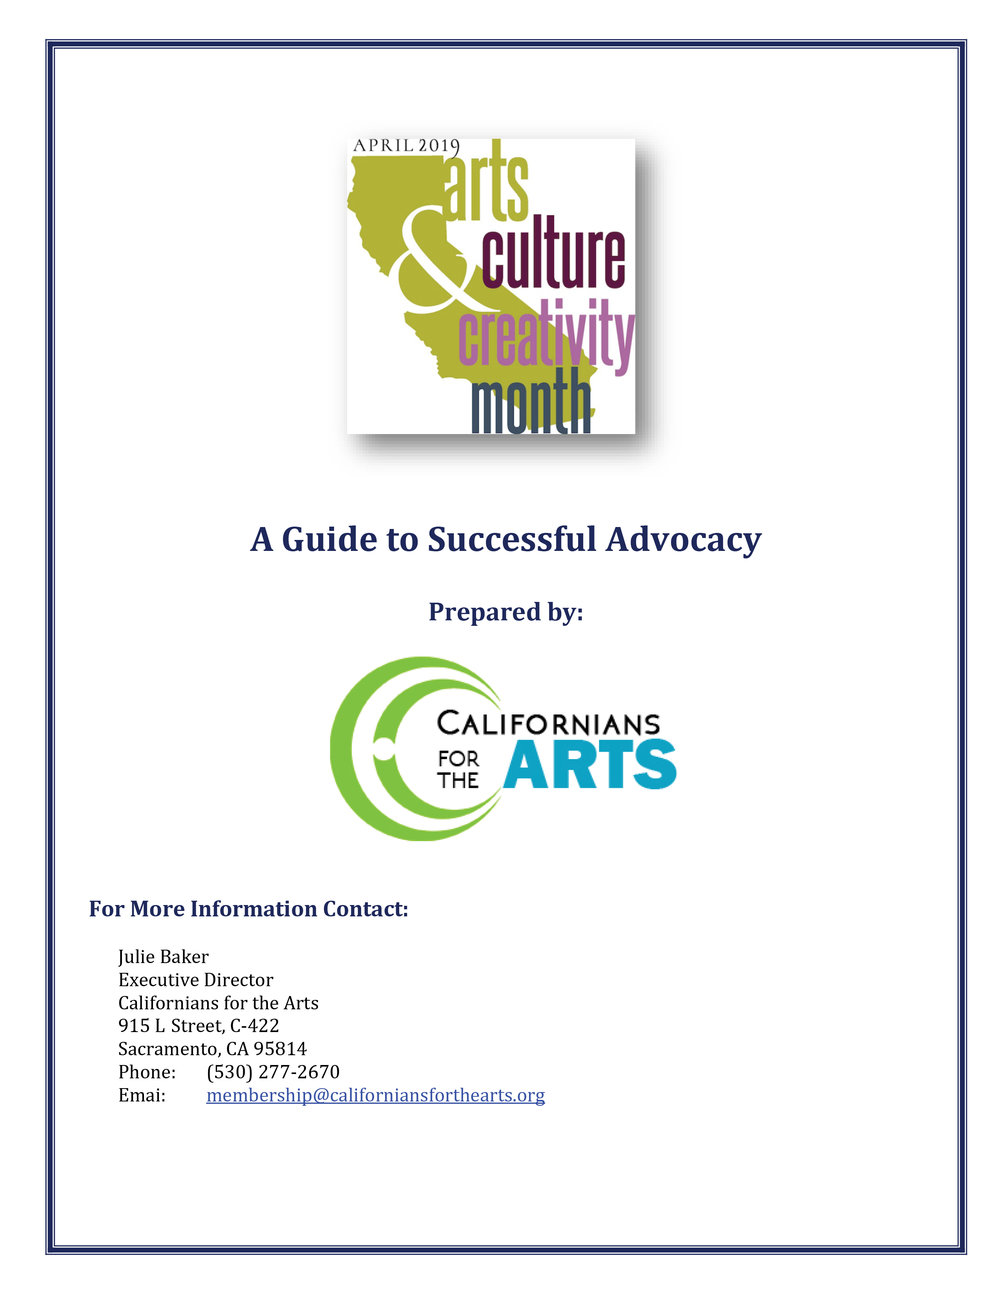 A Guide to Successful Advocacy.jpg